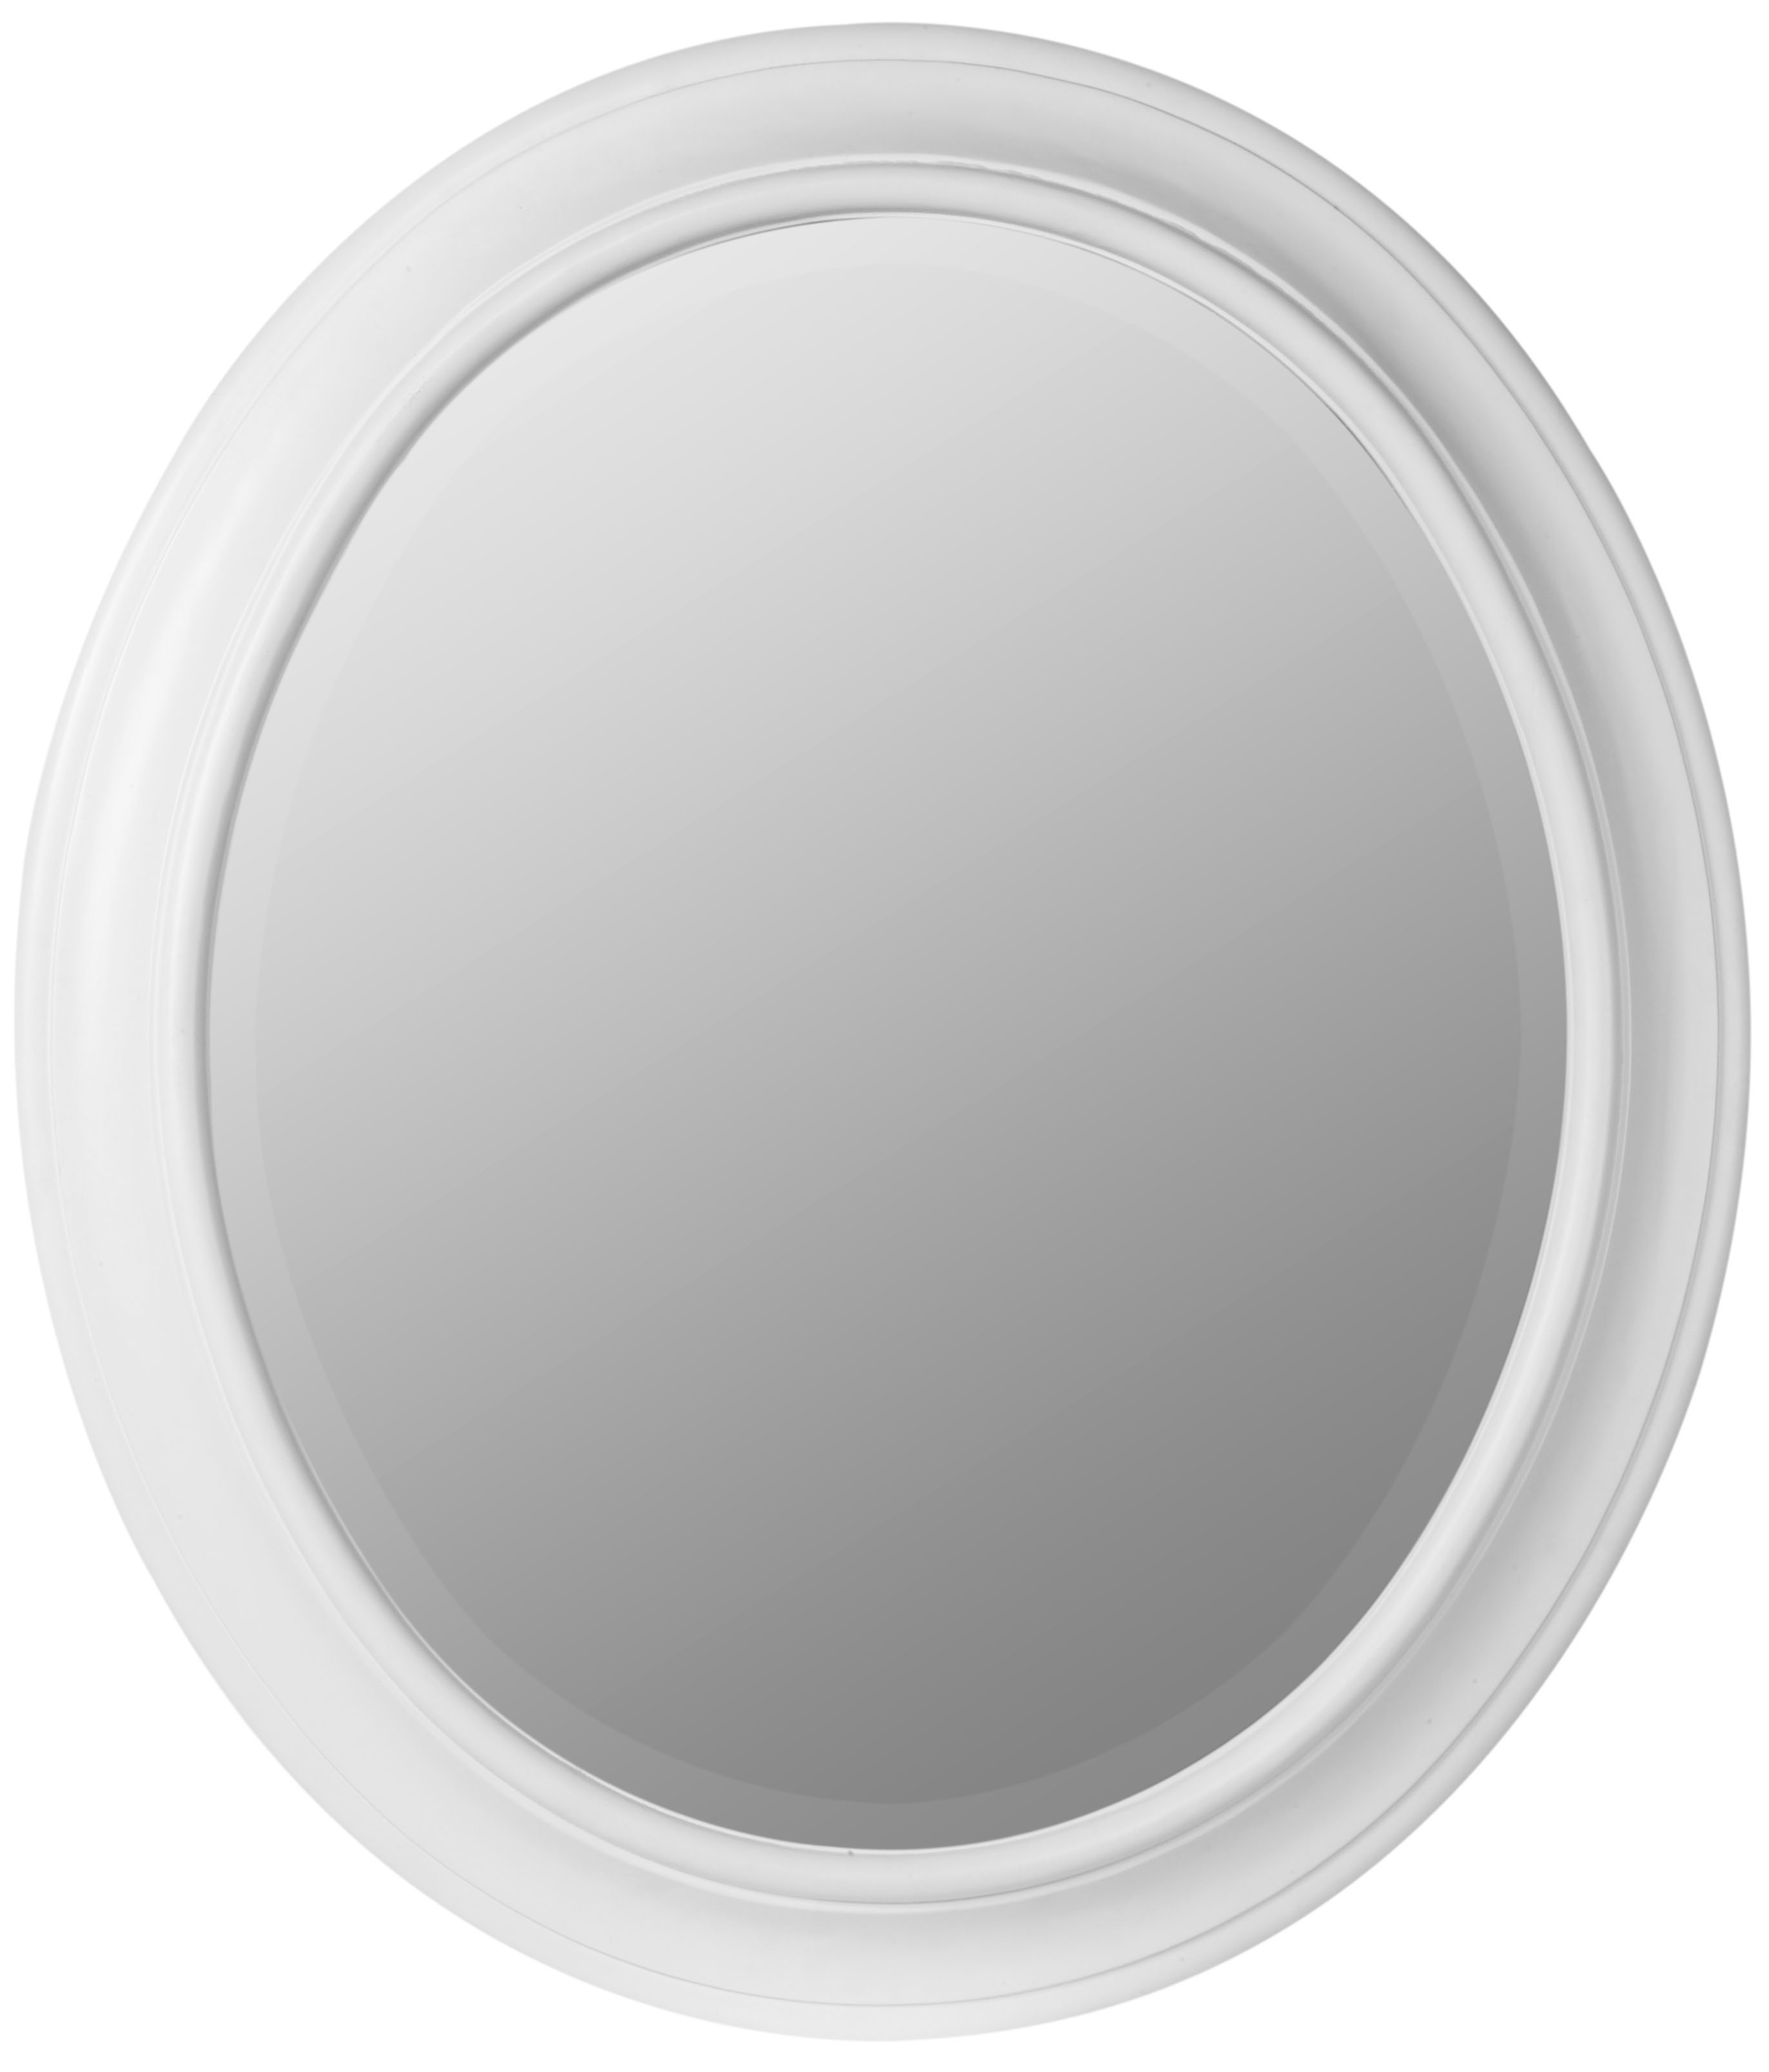 Cooper Classics Chelsea Oval Mirror With White Oval Mirror (Image 1 of 15)